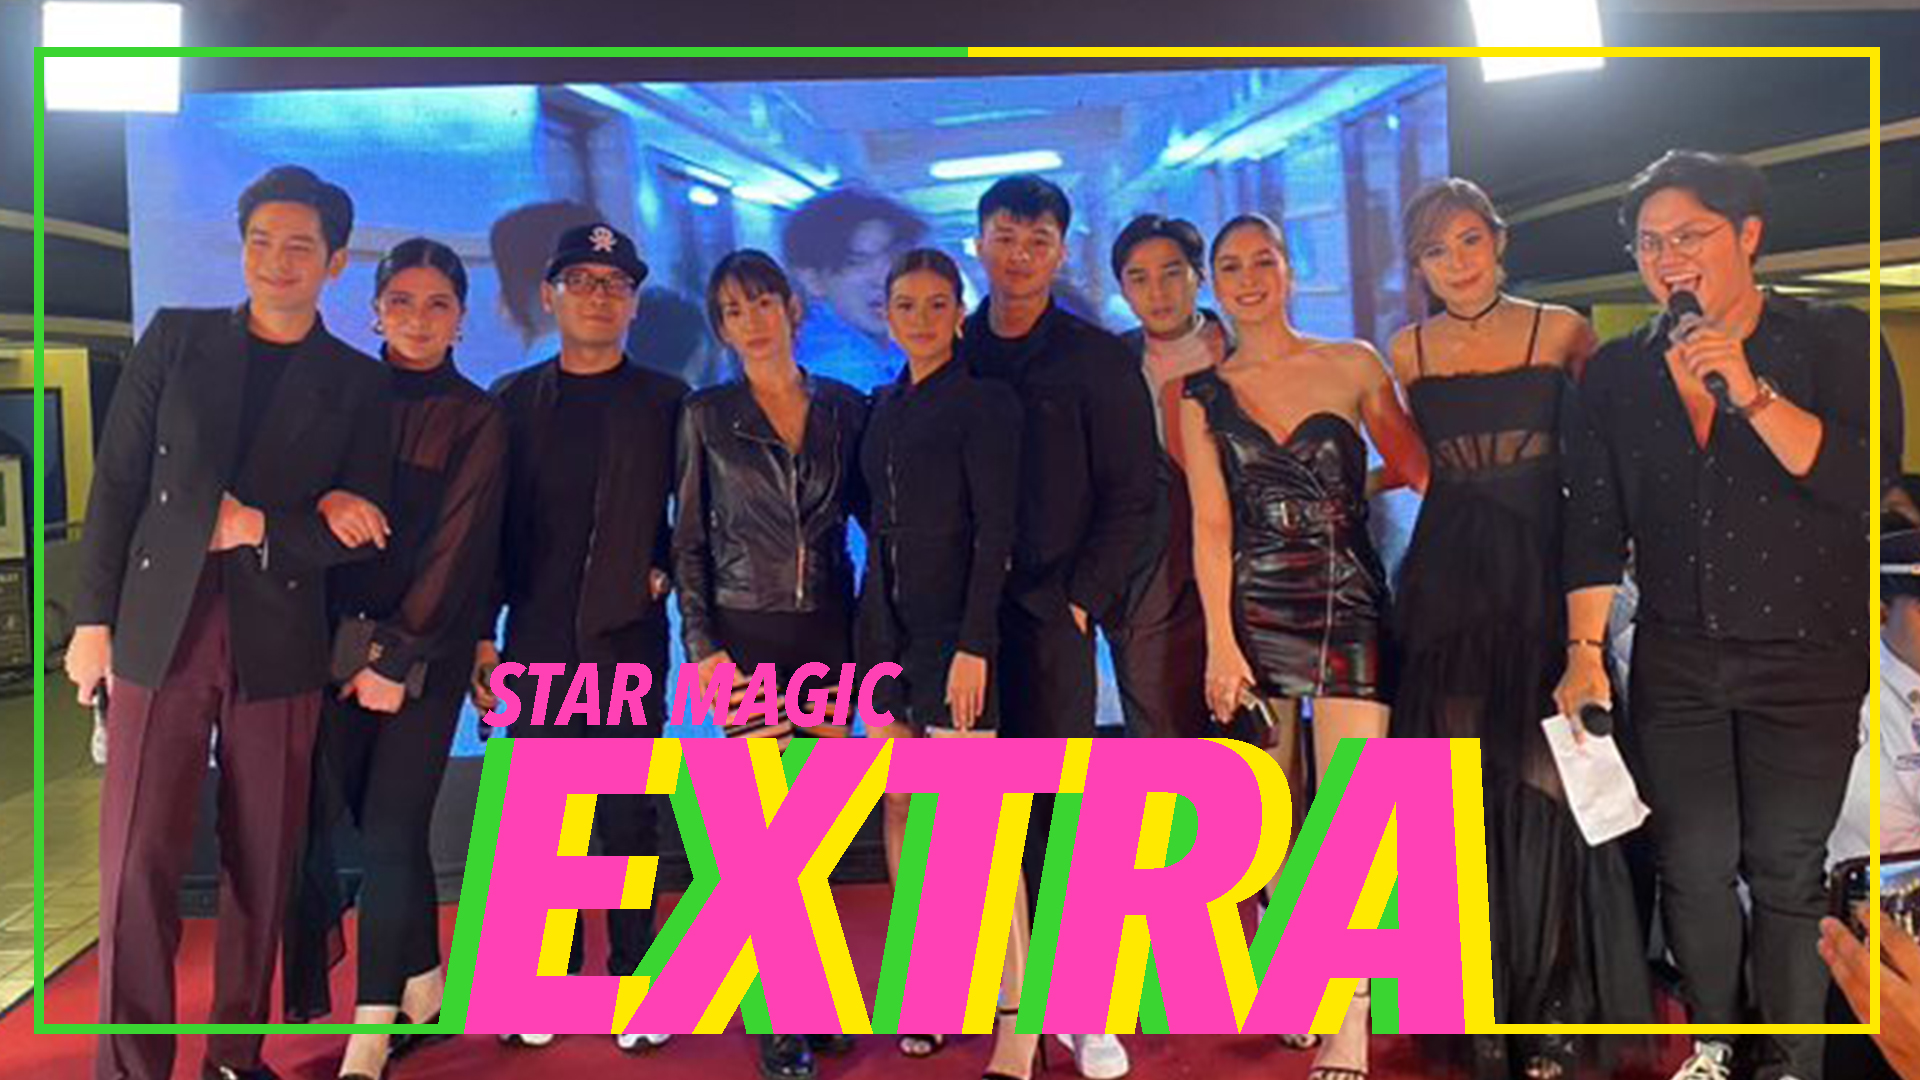 Star Magic Extra: Issue No. 4